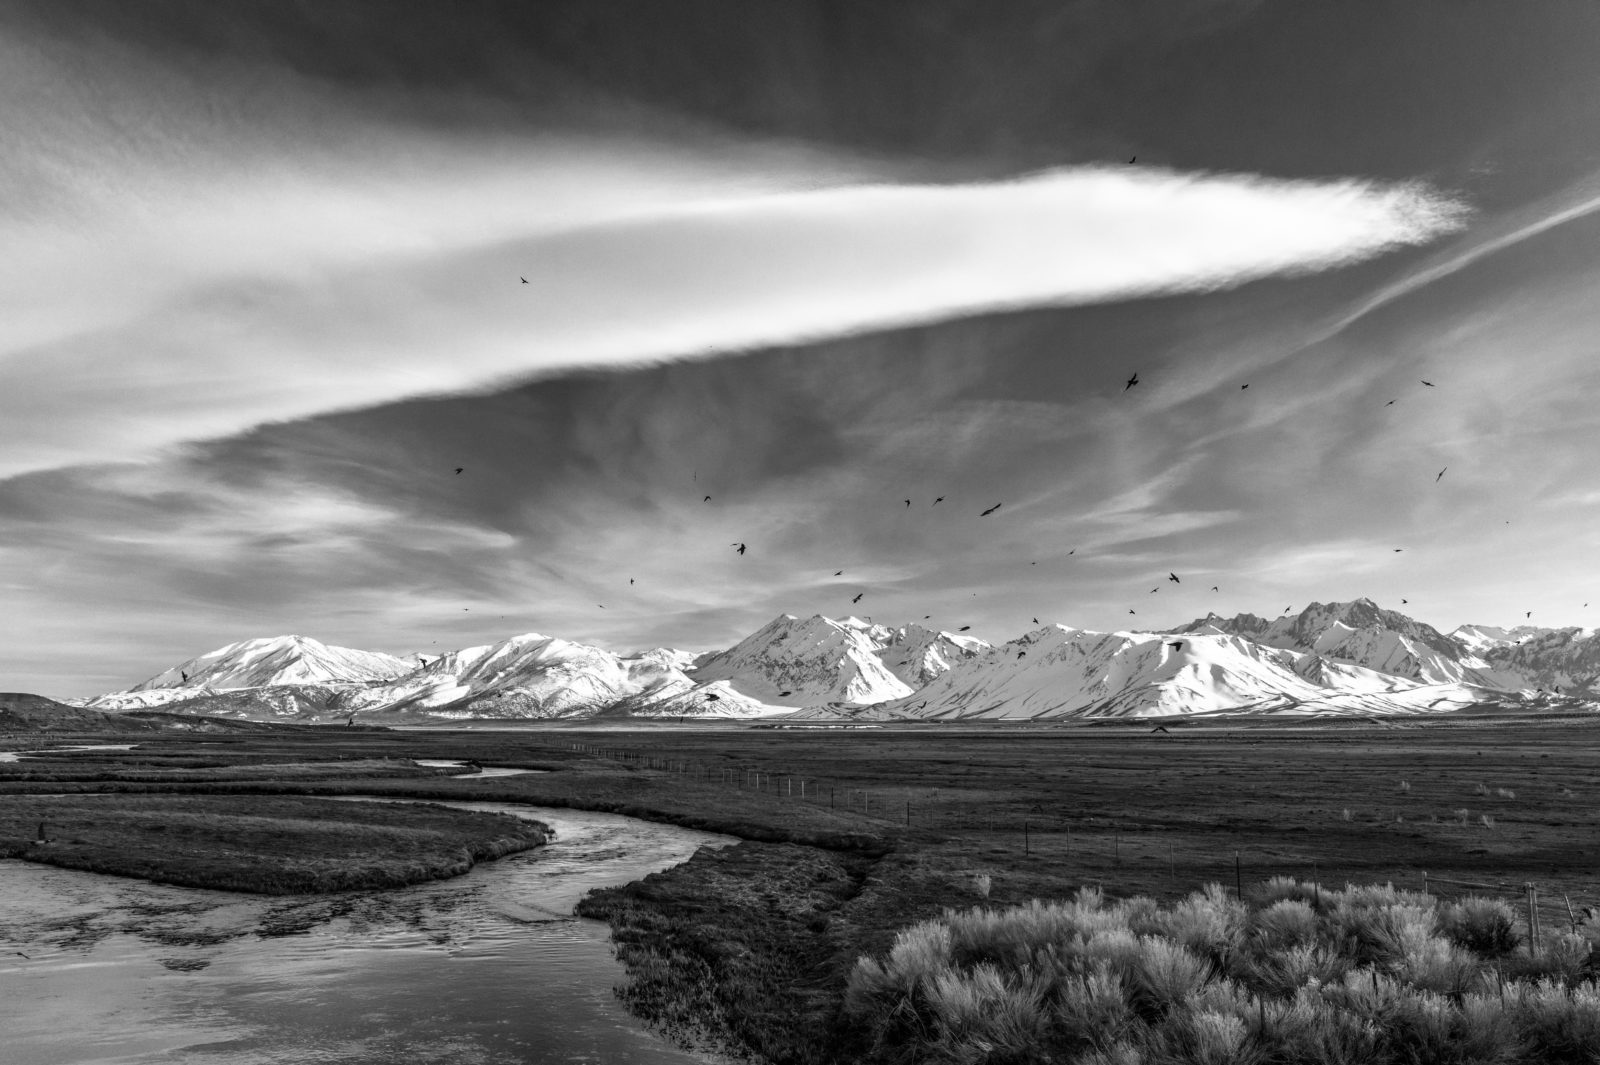 Swallows in Flight, Owens River Valley